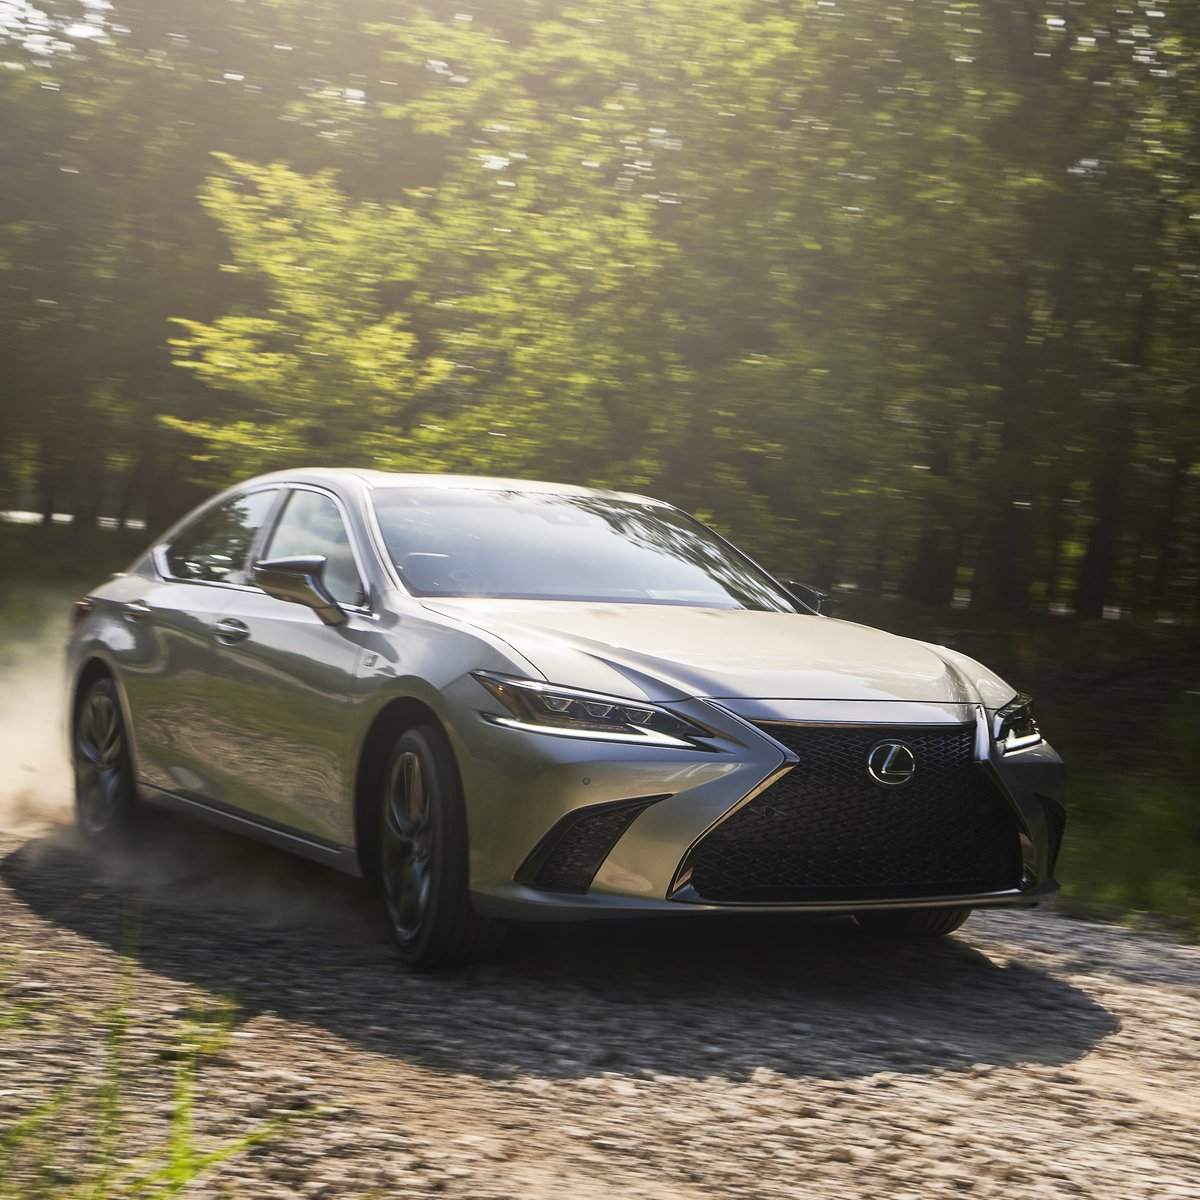 The new all-wheel drive #LexusES 250 AWD opens the road even more for you. Learn more: lexus.us/3hahIgC